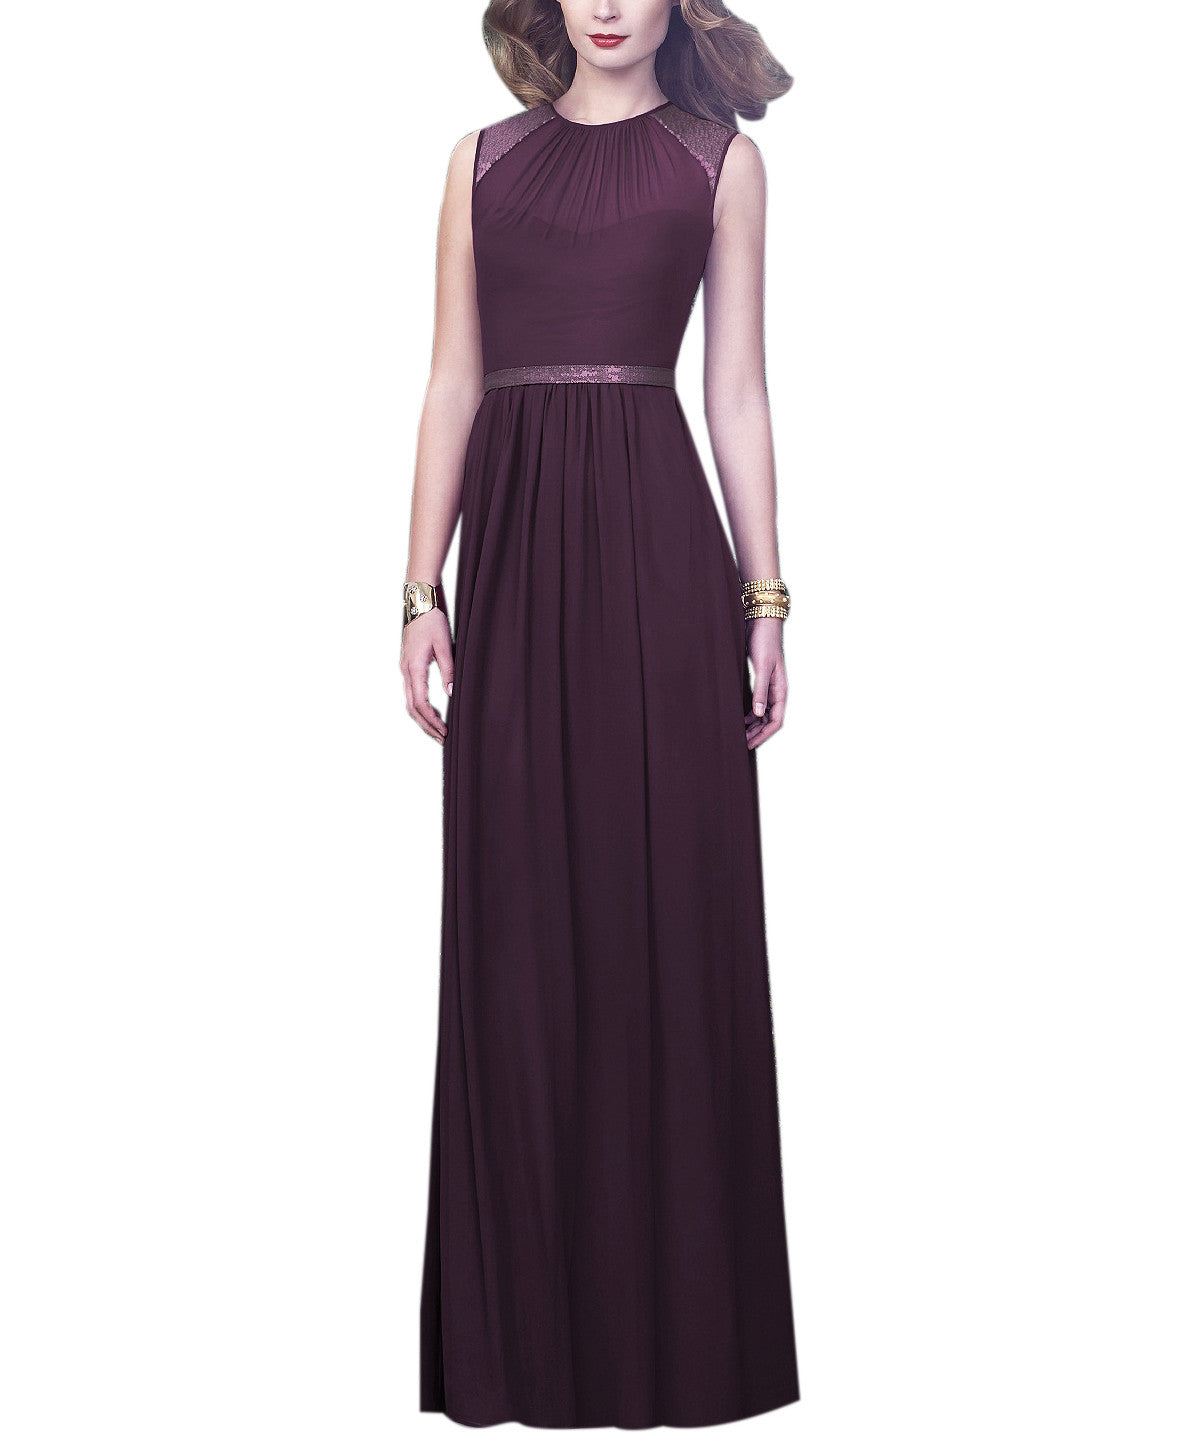 Dessy collection style 2921 bridesmaid dress brideside dessy collection style 2921 ombrellifo Image collections